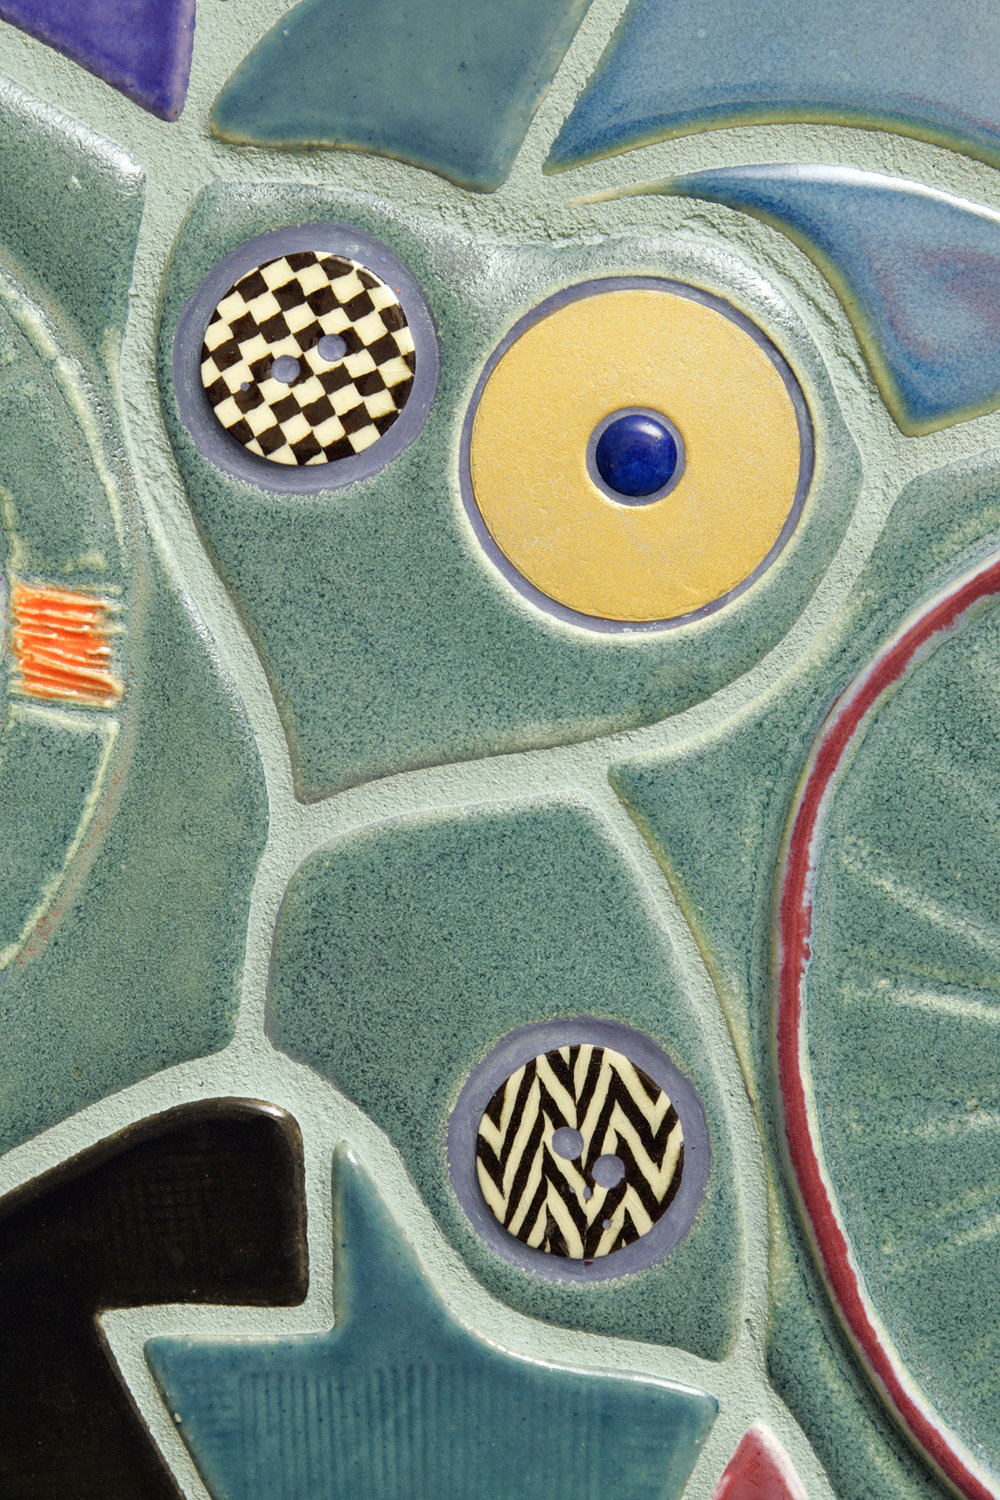 inset metal and ceramic detail